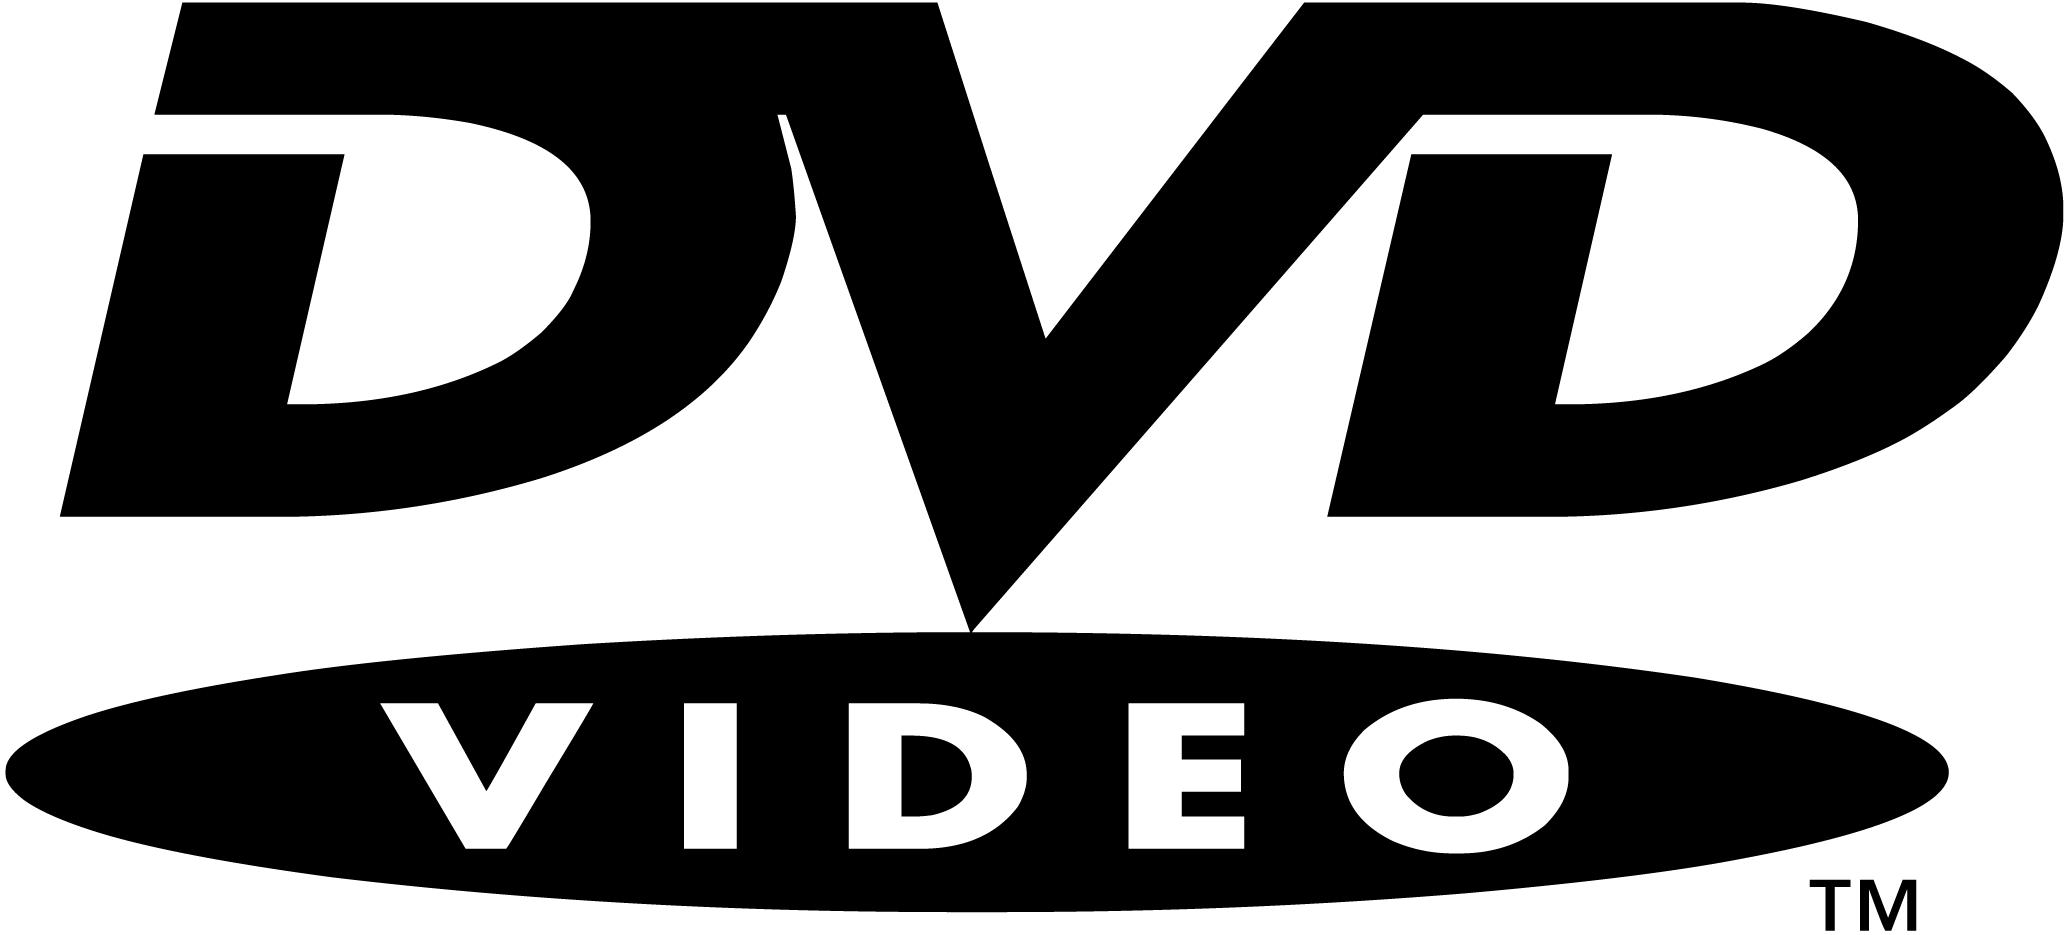 File:DVD VIDEO logo.png - Wikimedia Commons